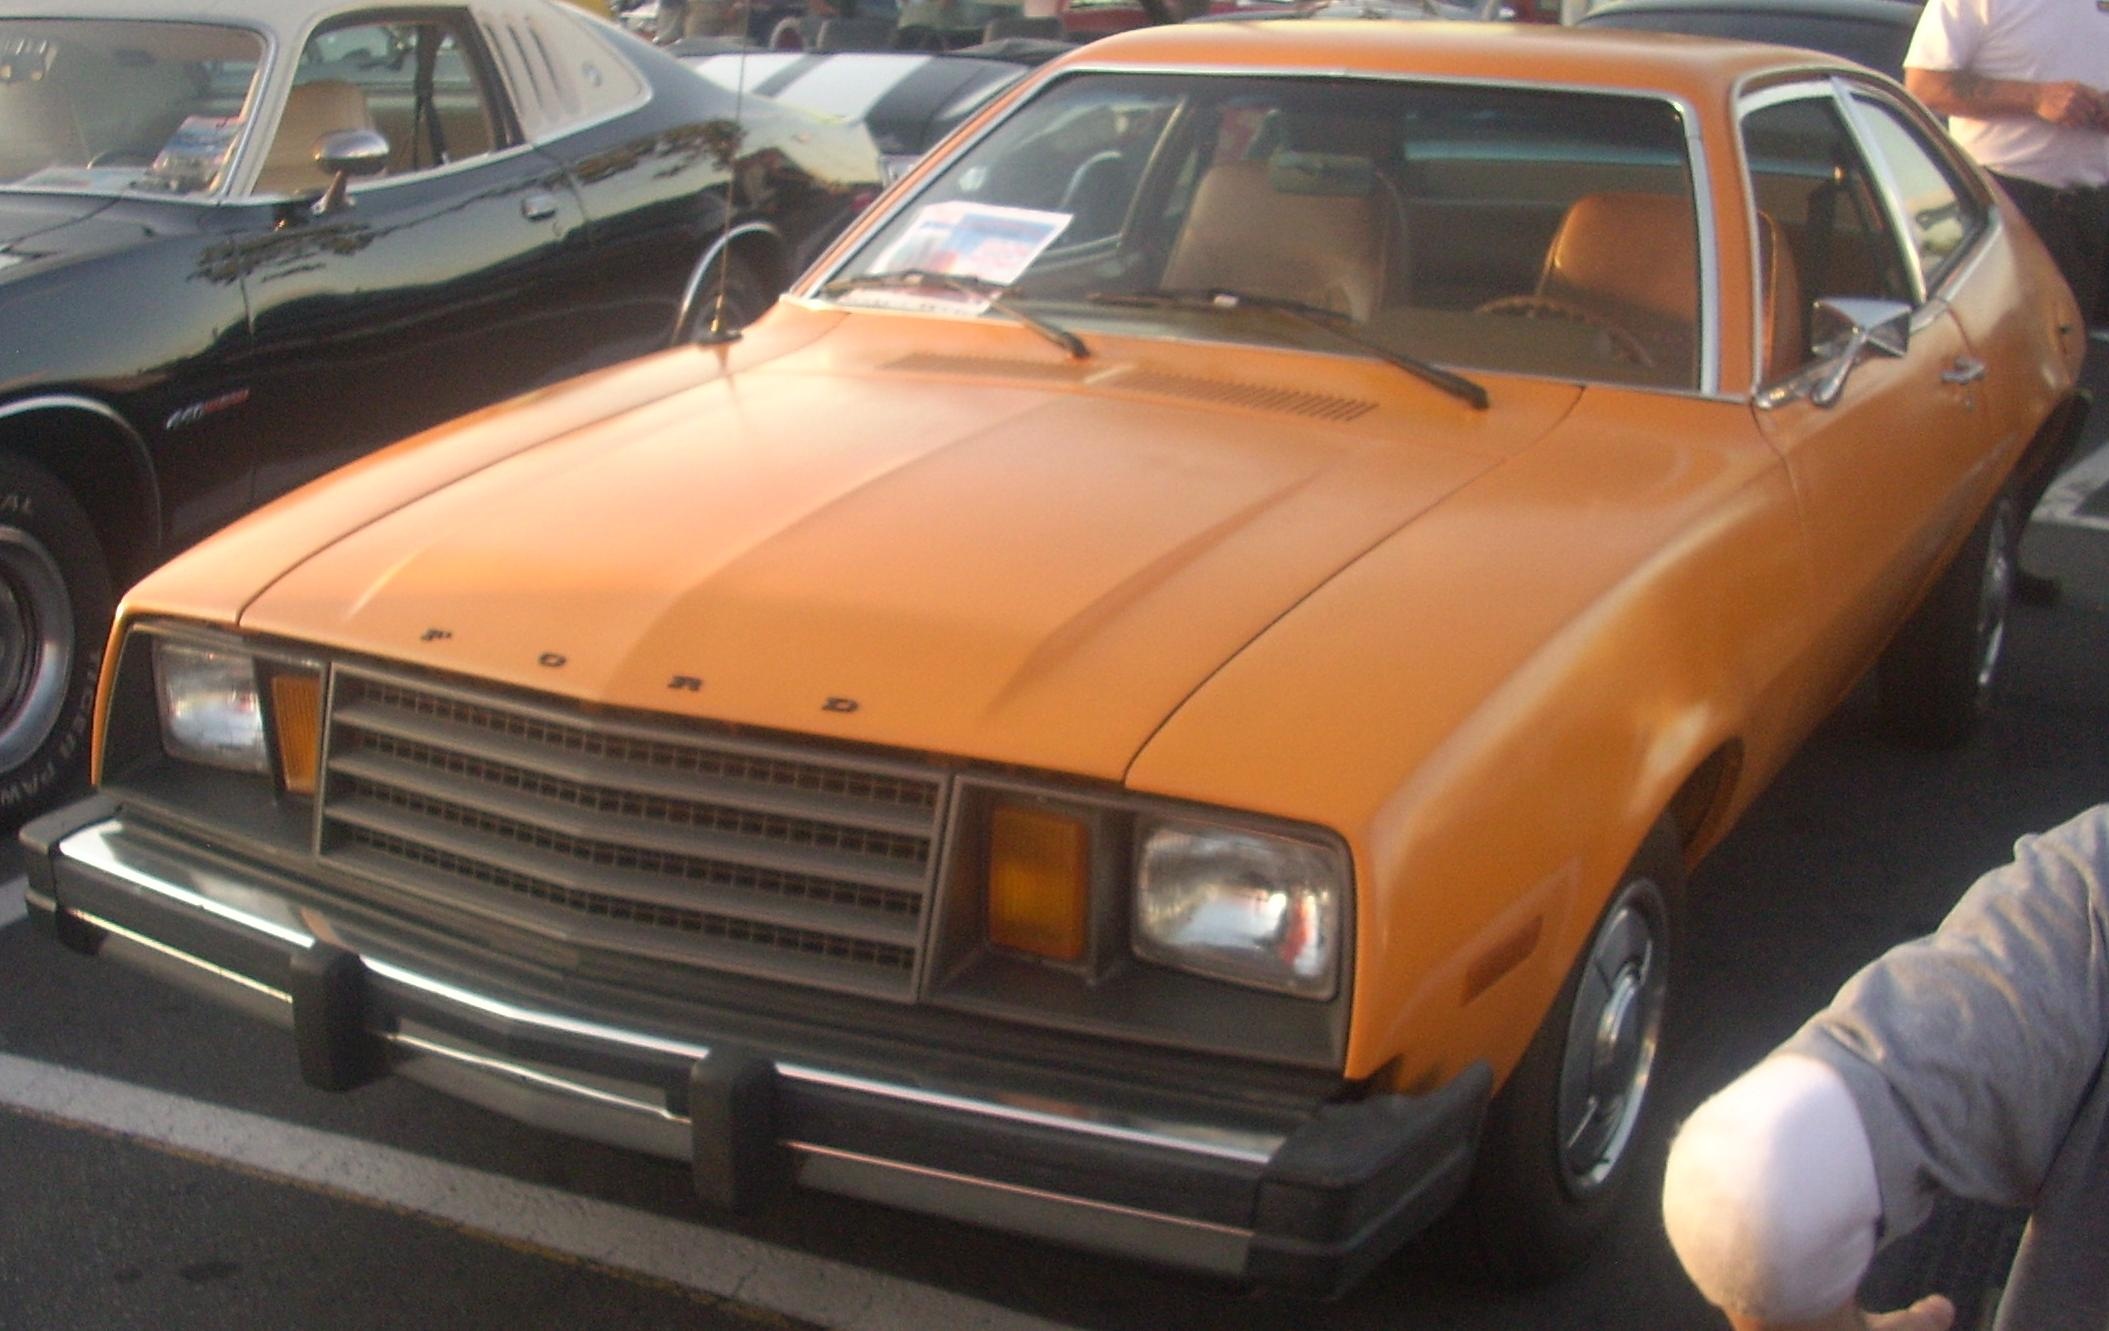 File80 ford pinto hatchback orange julepg wikimedia commons file80 ford pinto hatchback orange julepg sciox Gallery